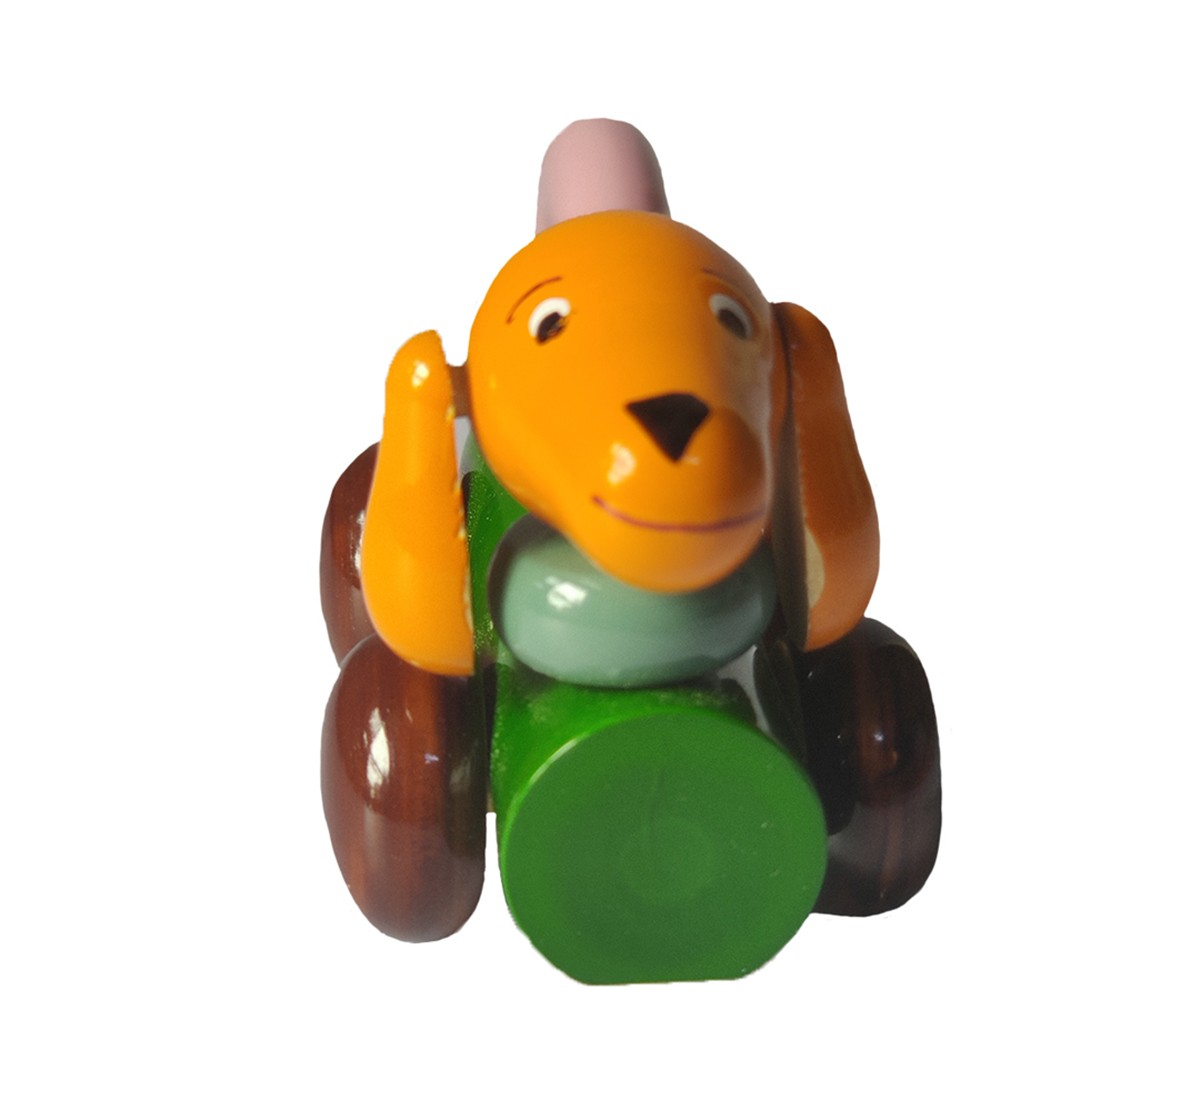 Nurture India Wooden Dog Pulling Toy Wooden Toys for Kids age 12M+